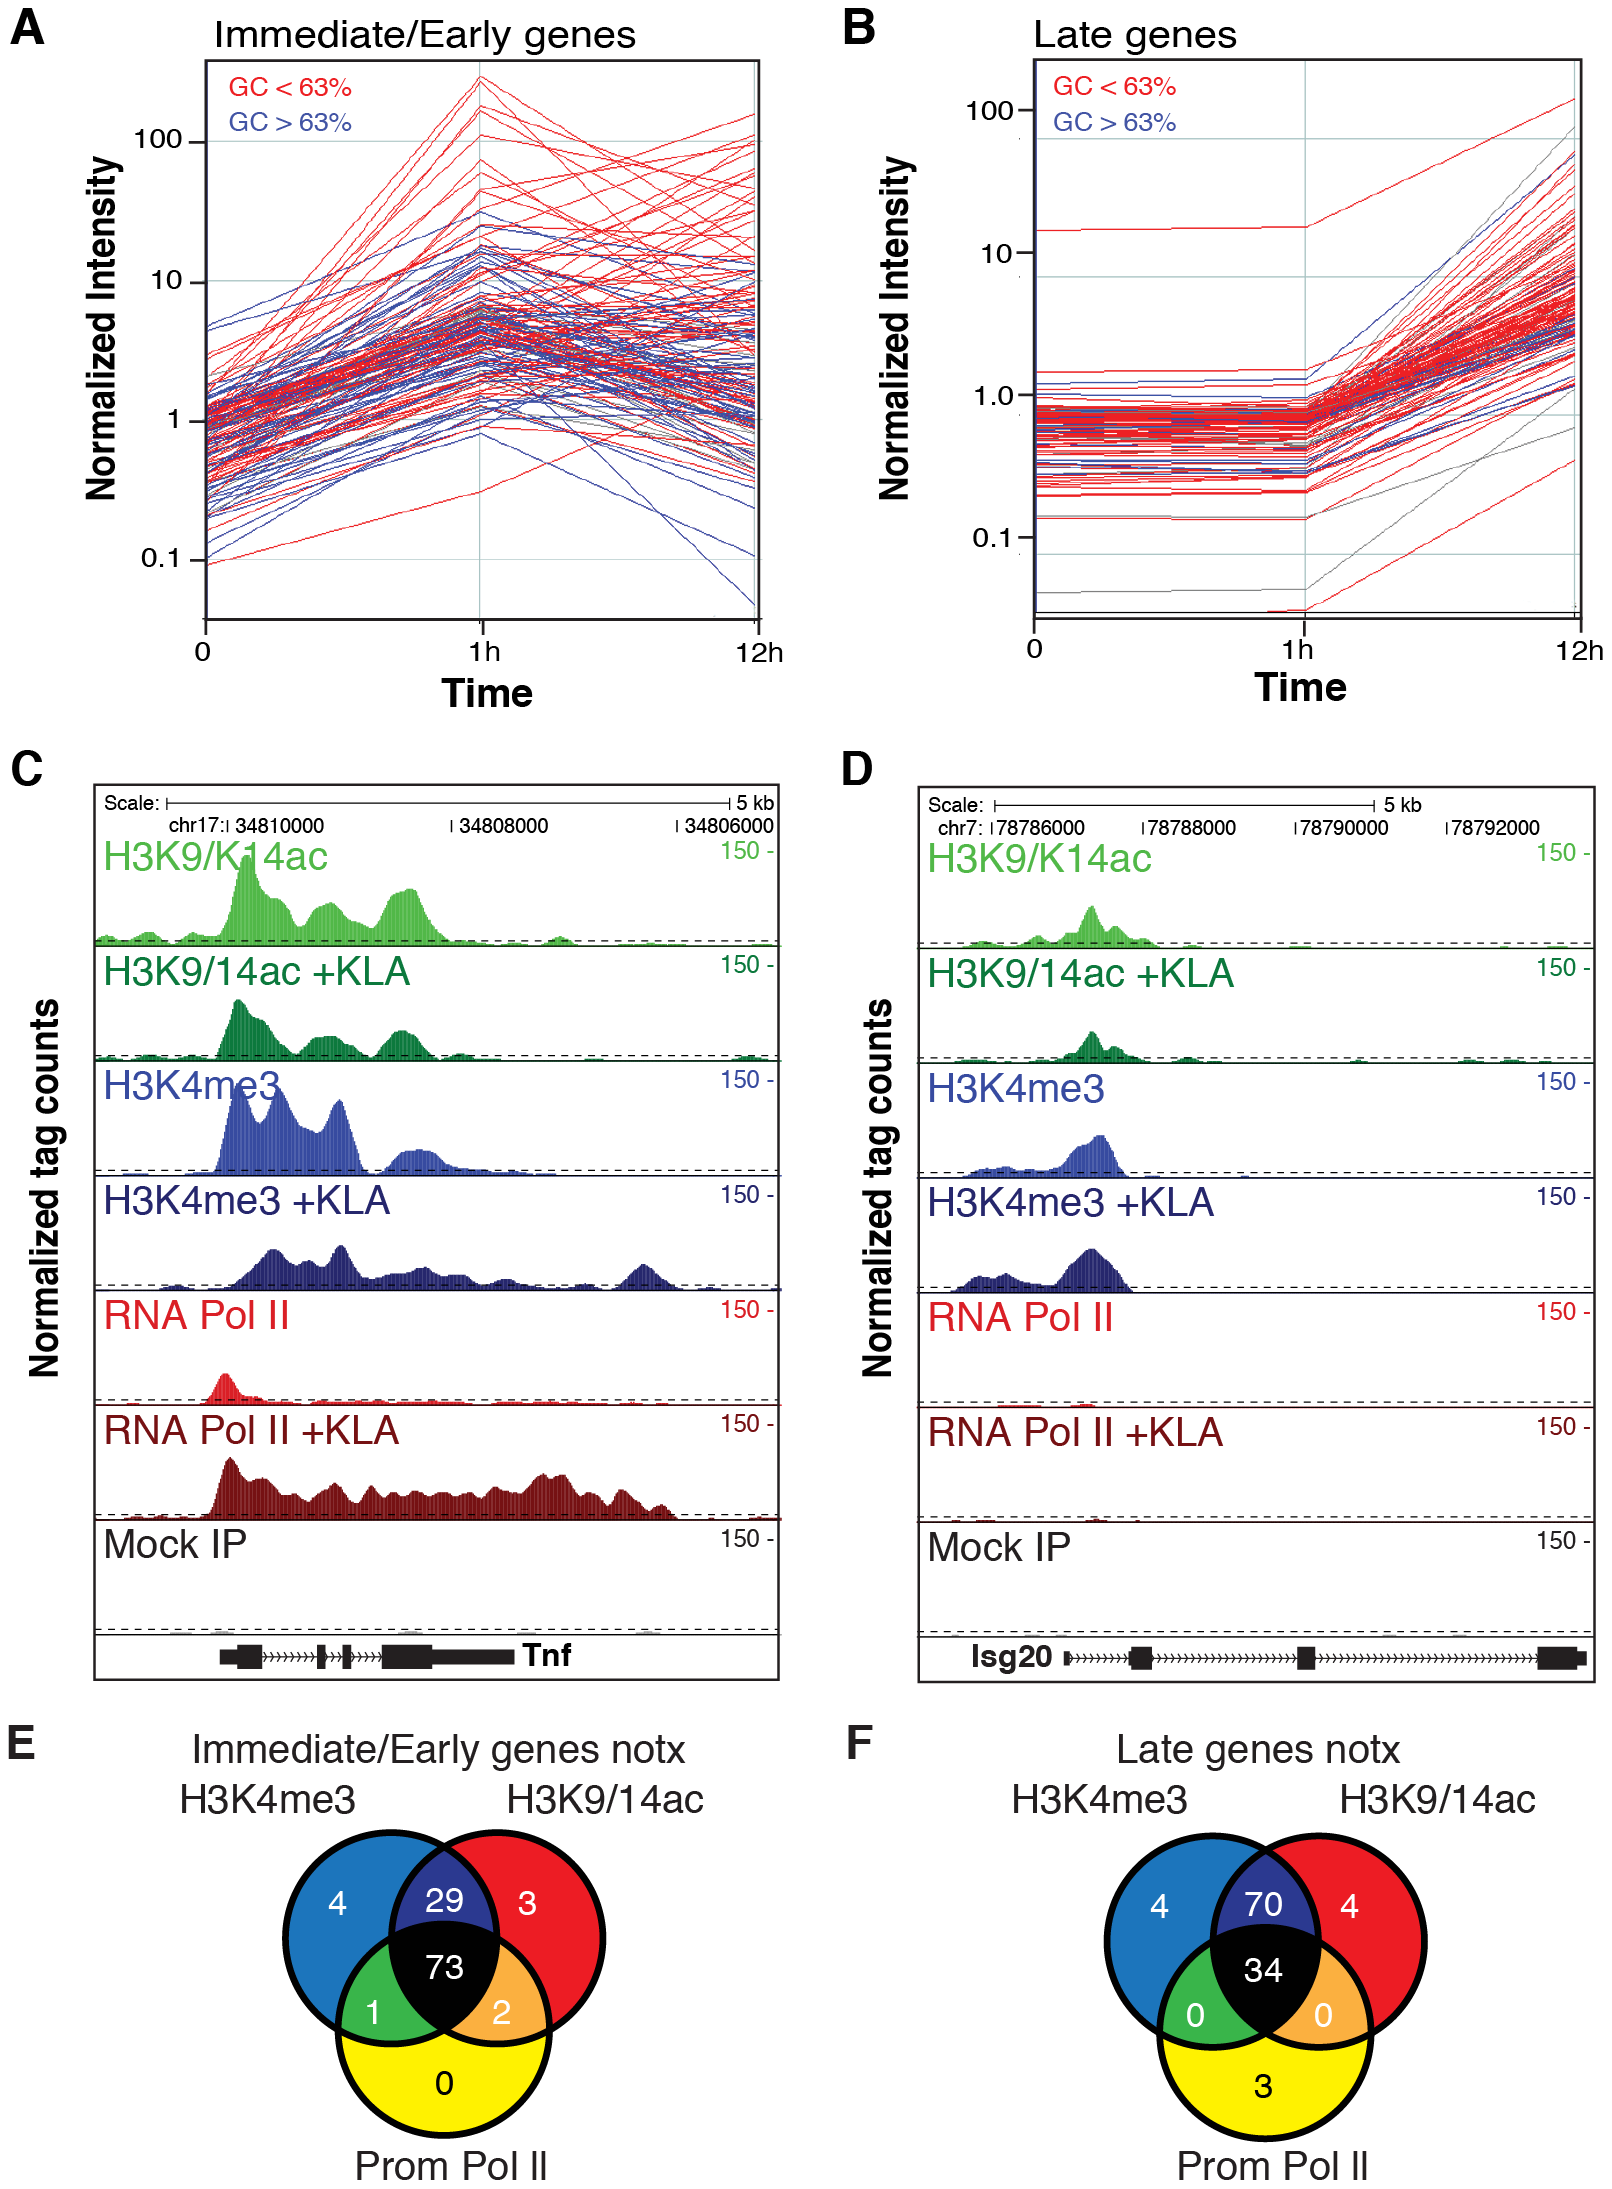 Immediate/early (I/E) and late genes exhibit characteristics of actively transcribed genes under basal conditions.